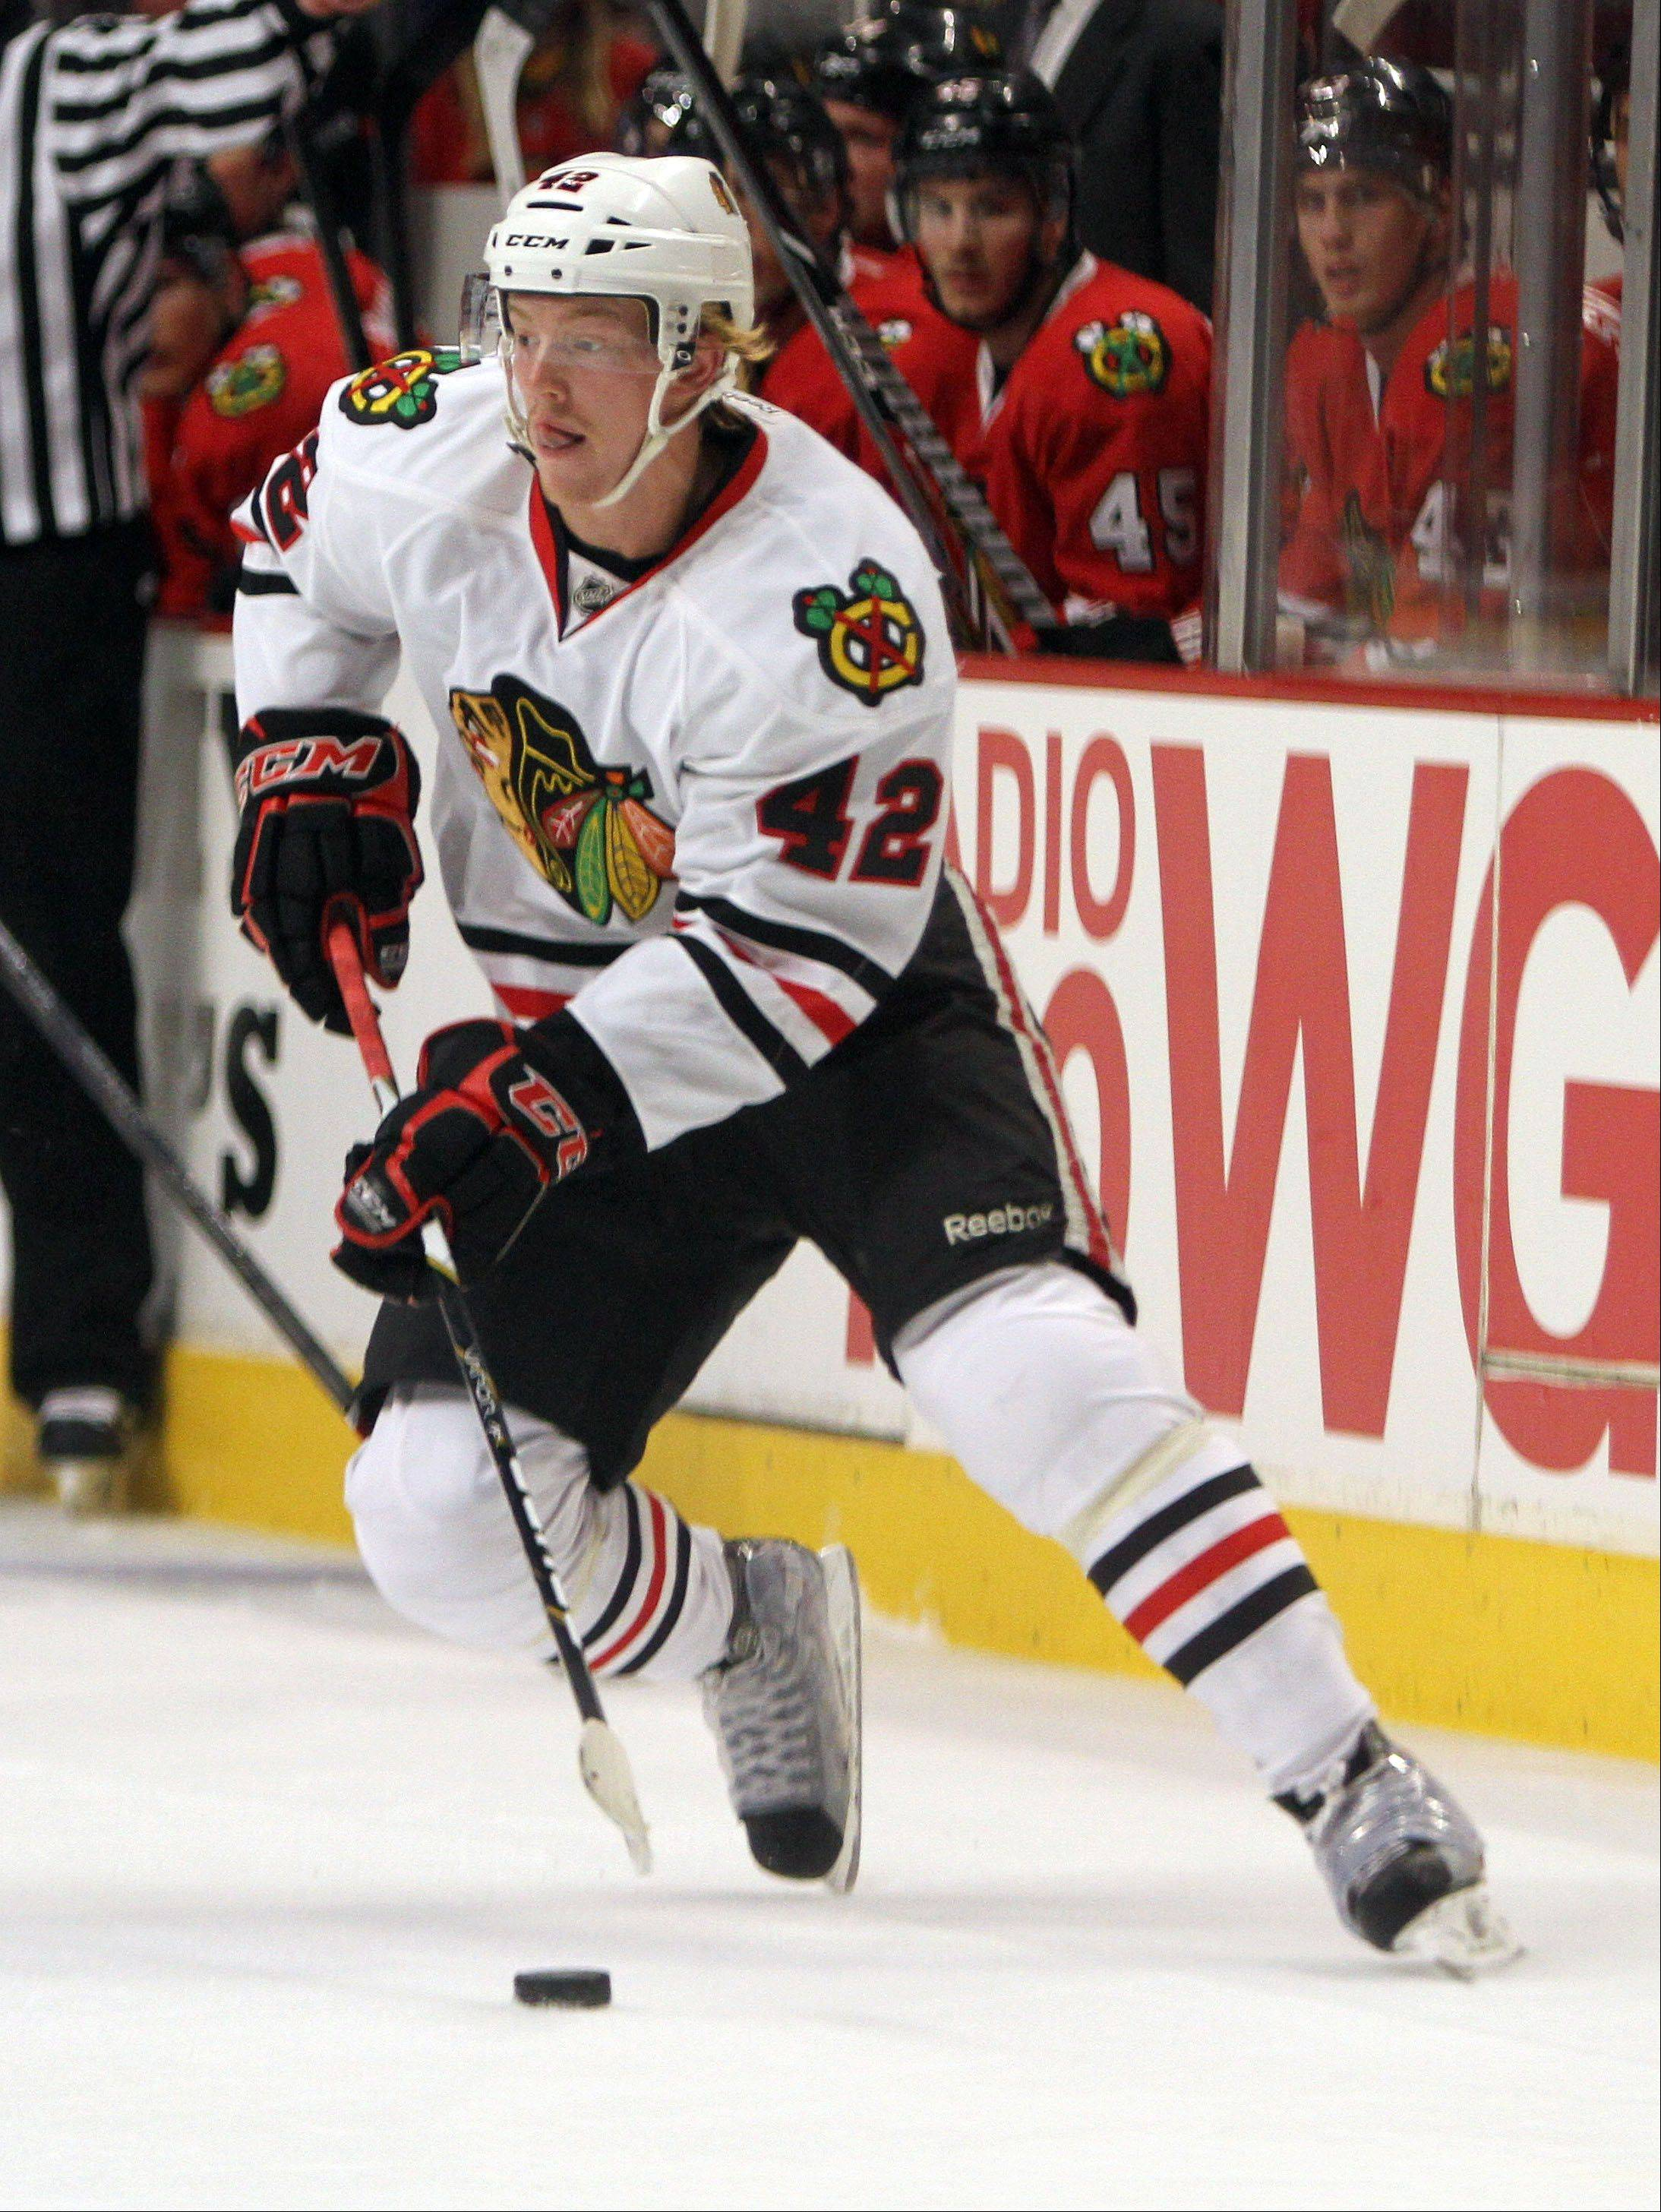 Nordstrom latest from Sweden to impress Blackhawks